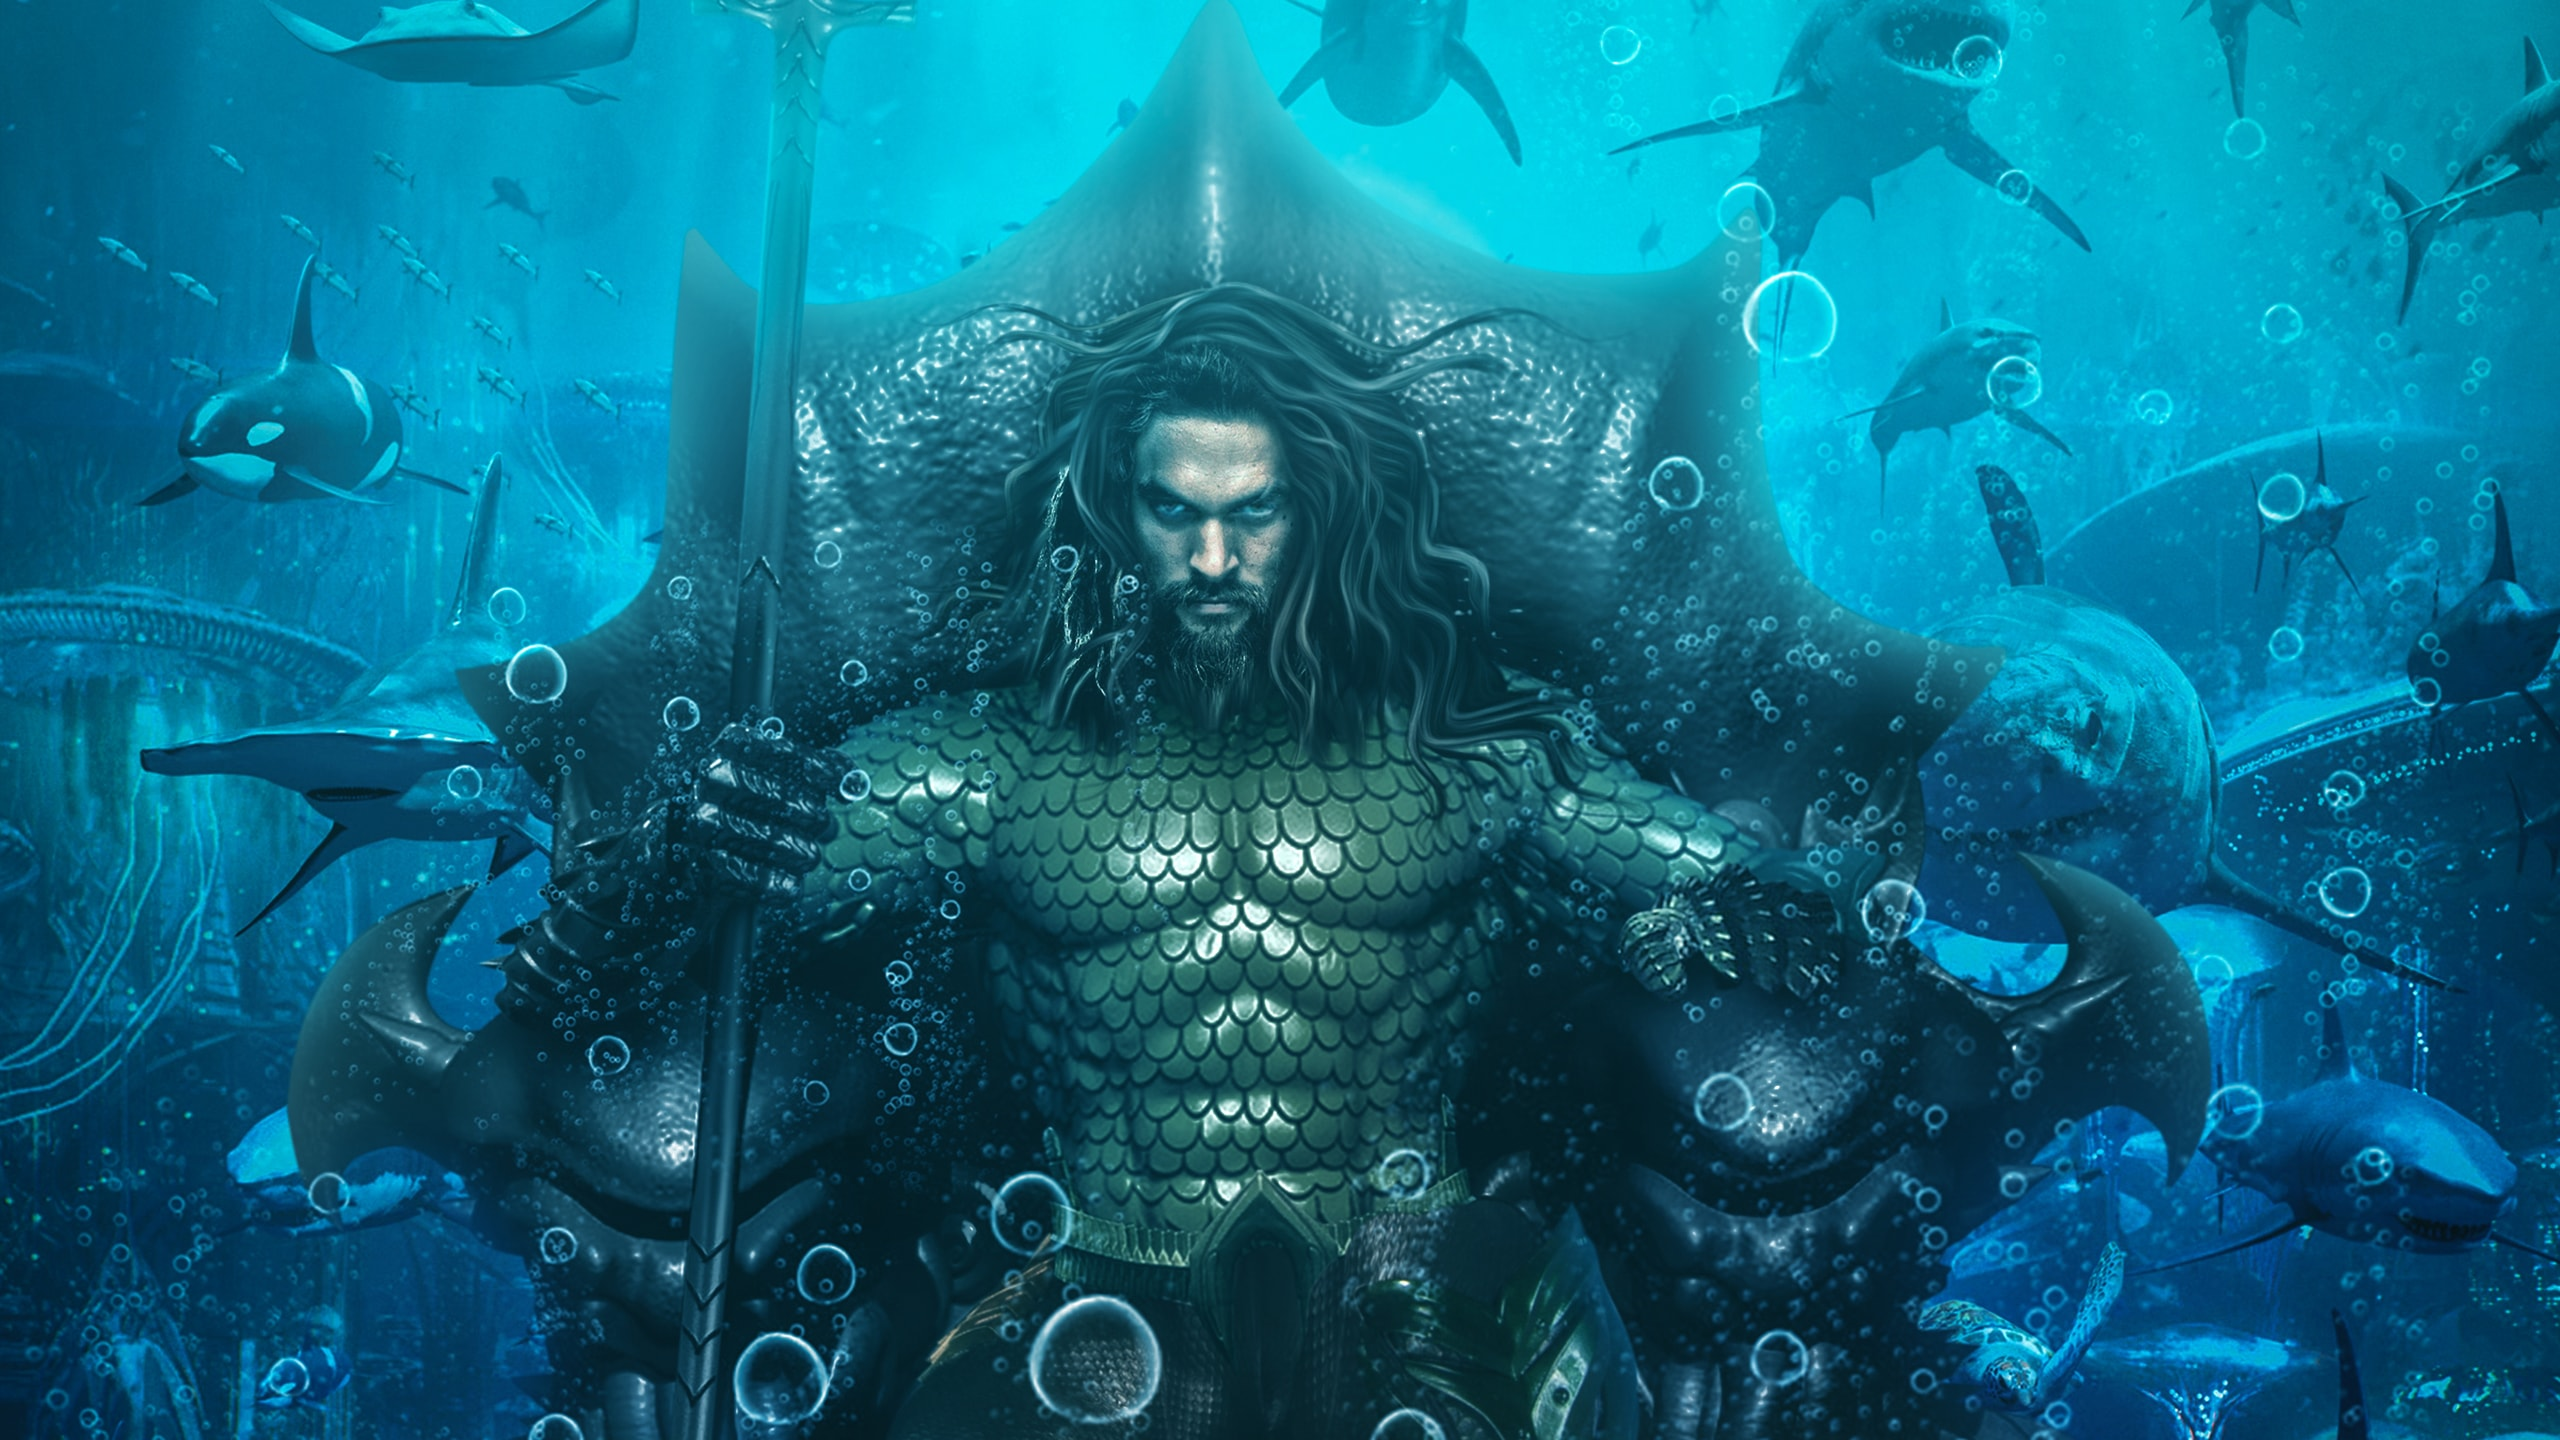 King Jason Momoa Aquaman Movie Wallpaper Background Min